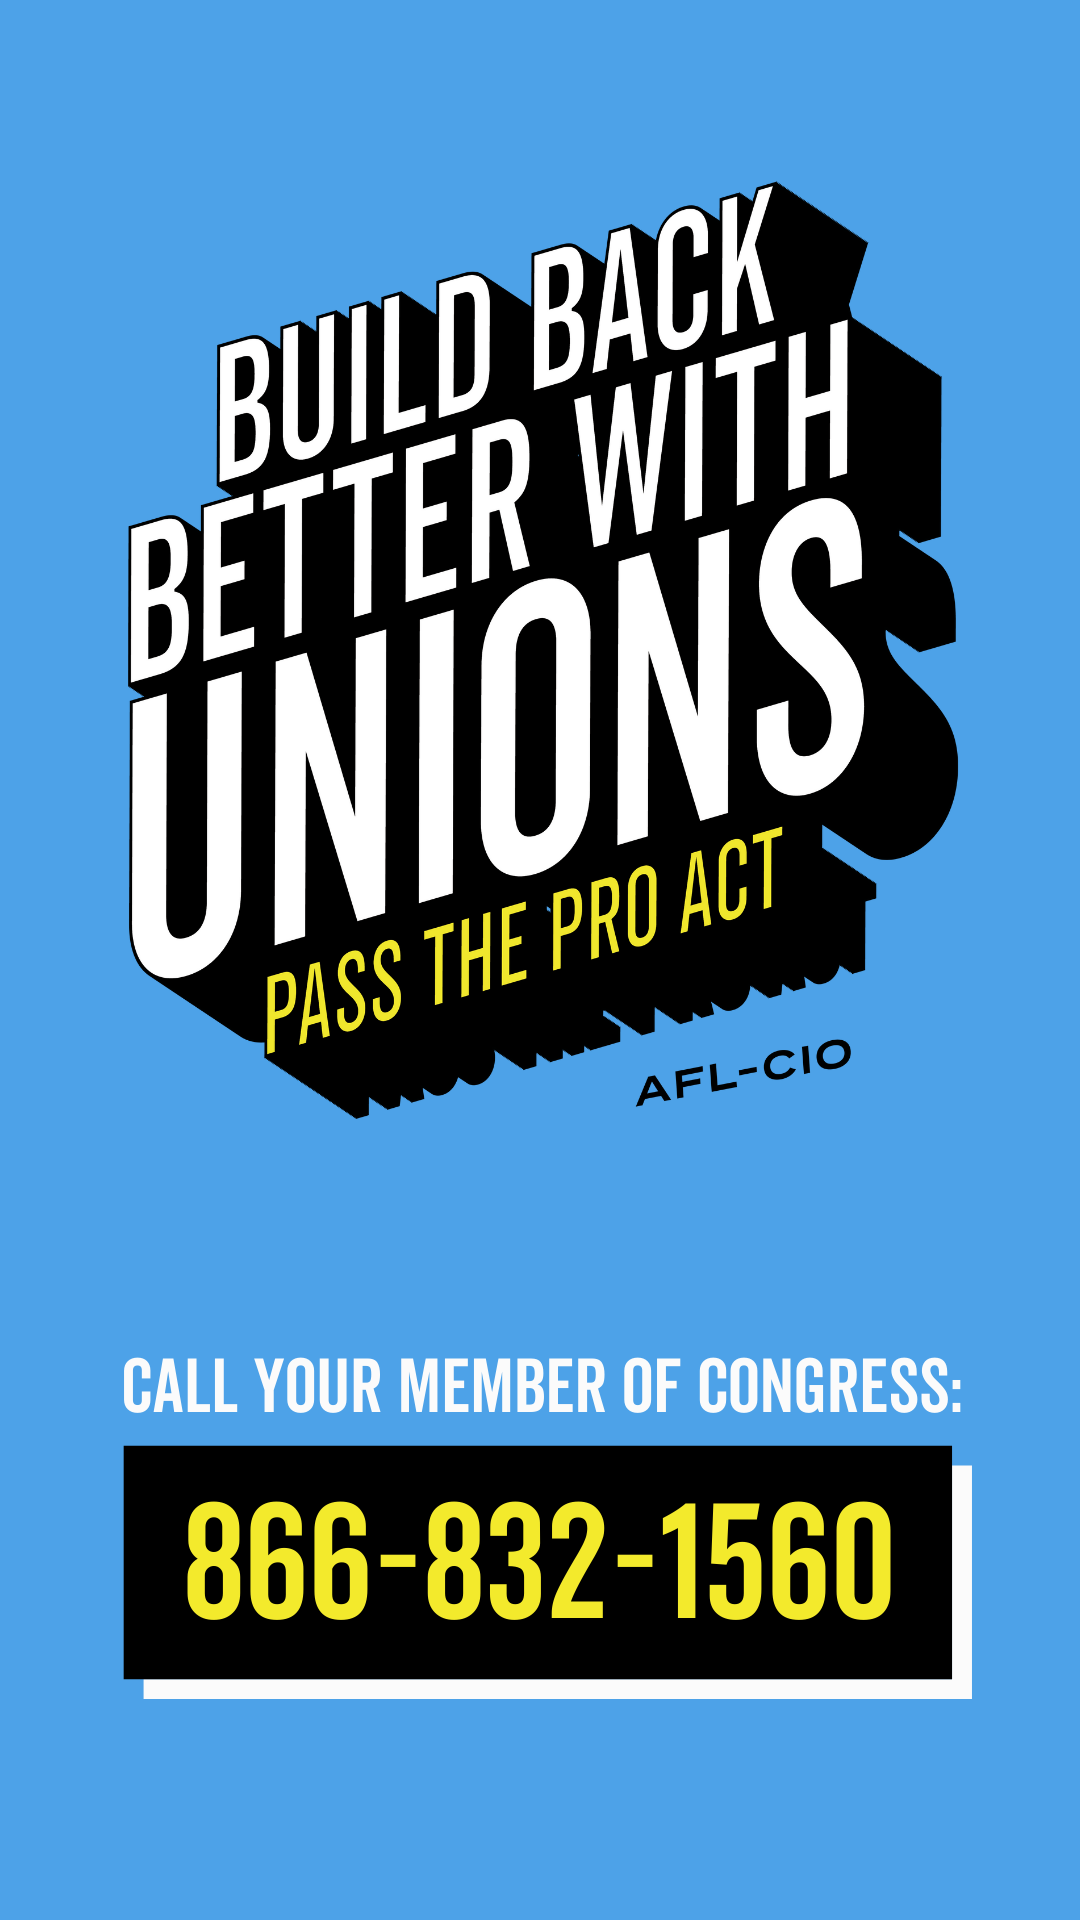 Build Back Better with Unions: Pass the PRO Act